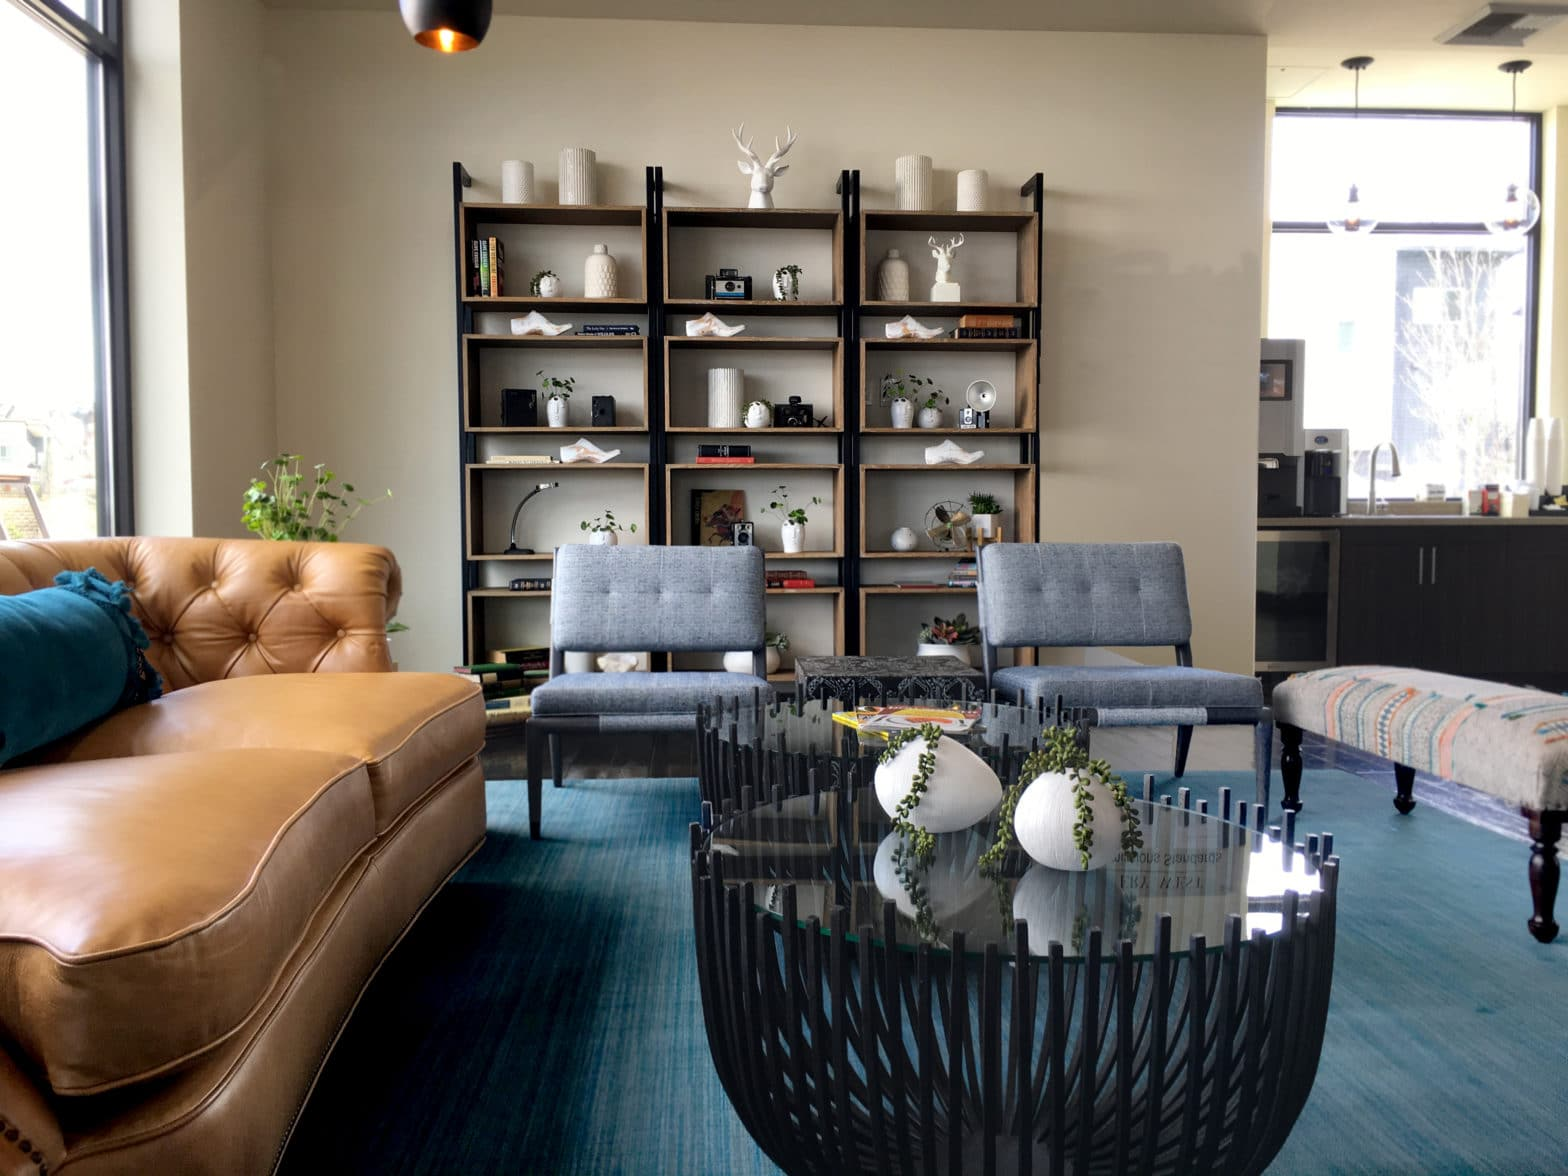 Living Room design with eclectic accessories